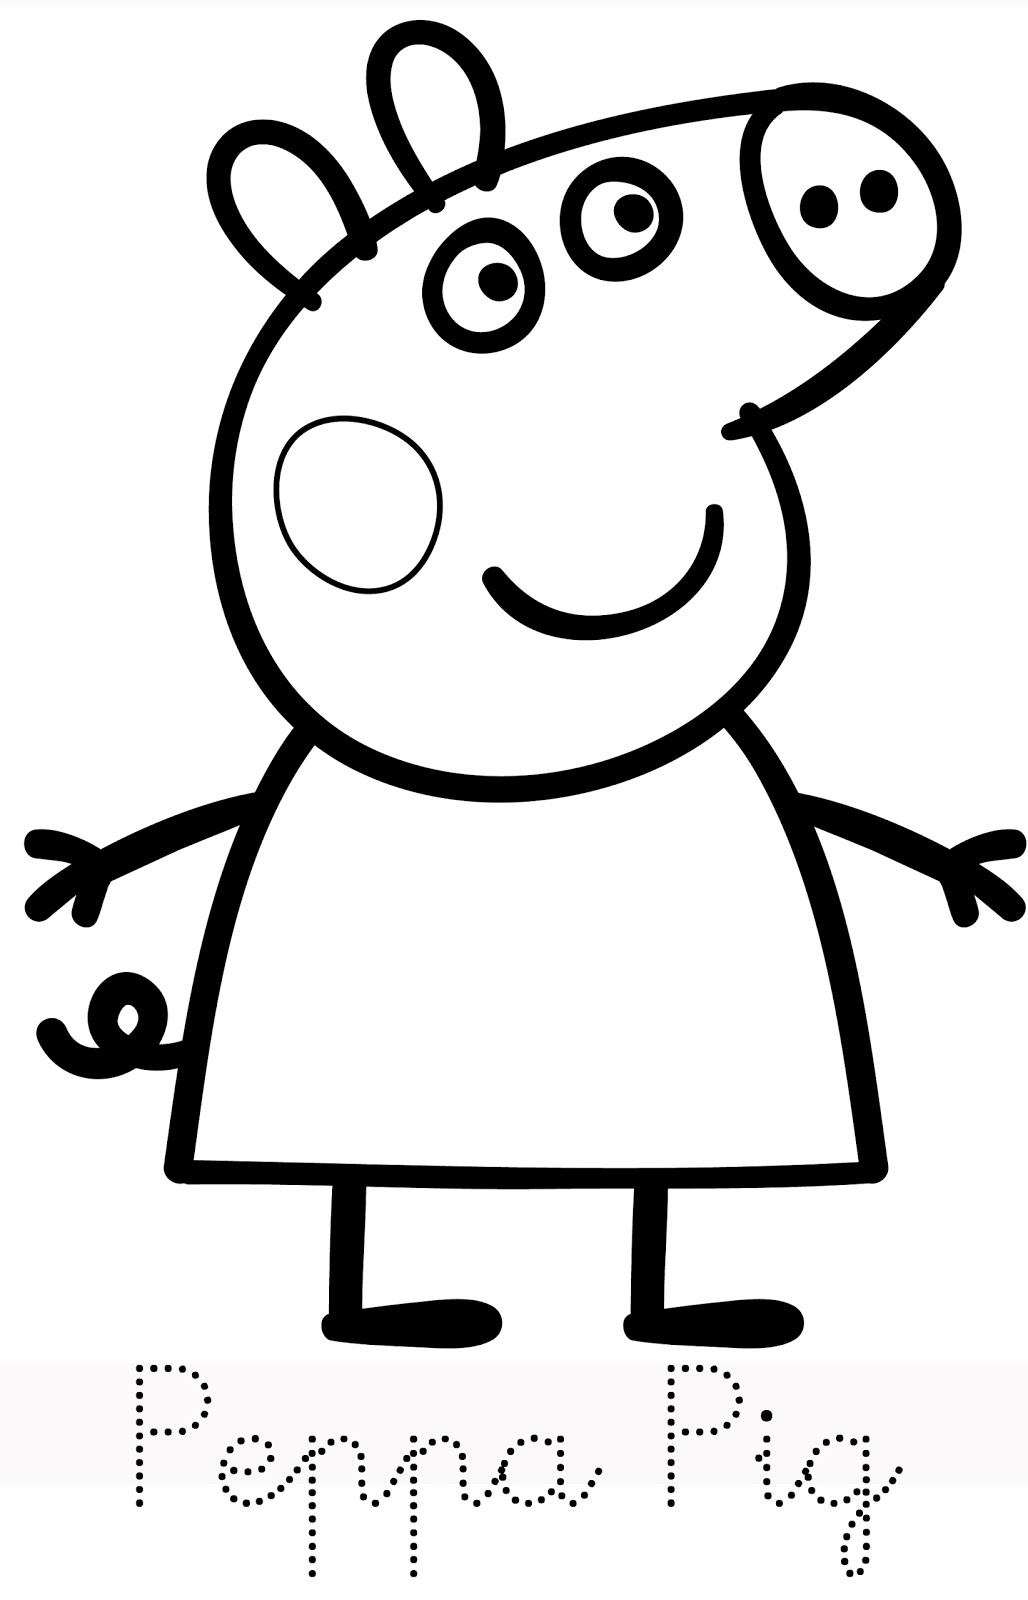 Zoe Zebra Peppa Pig Coloring Pages Coloring Pages